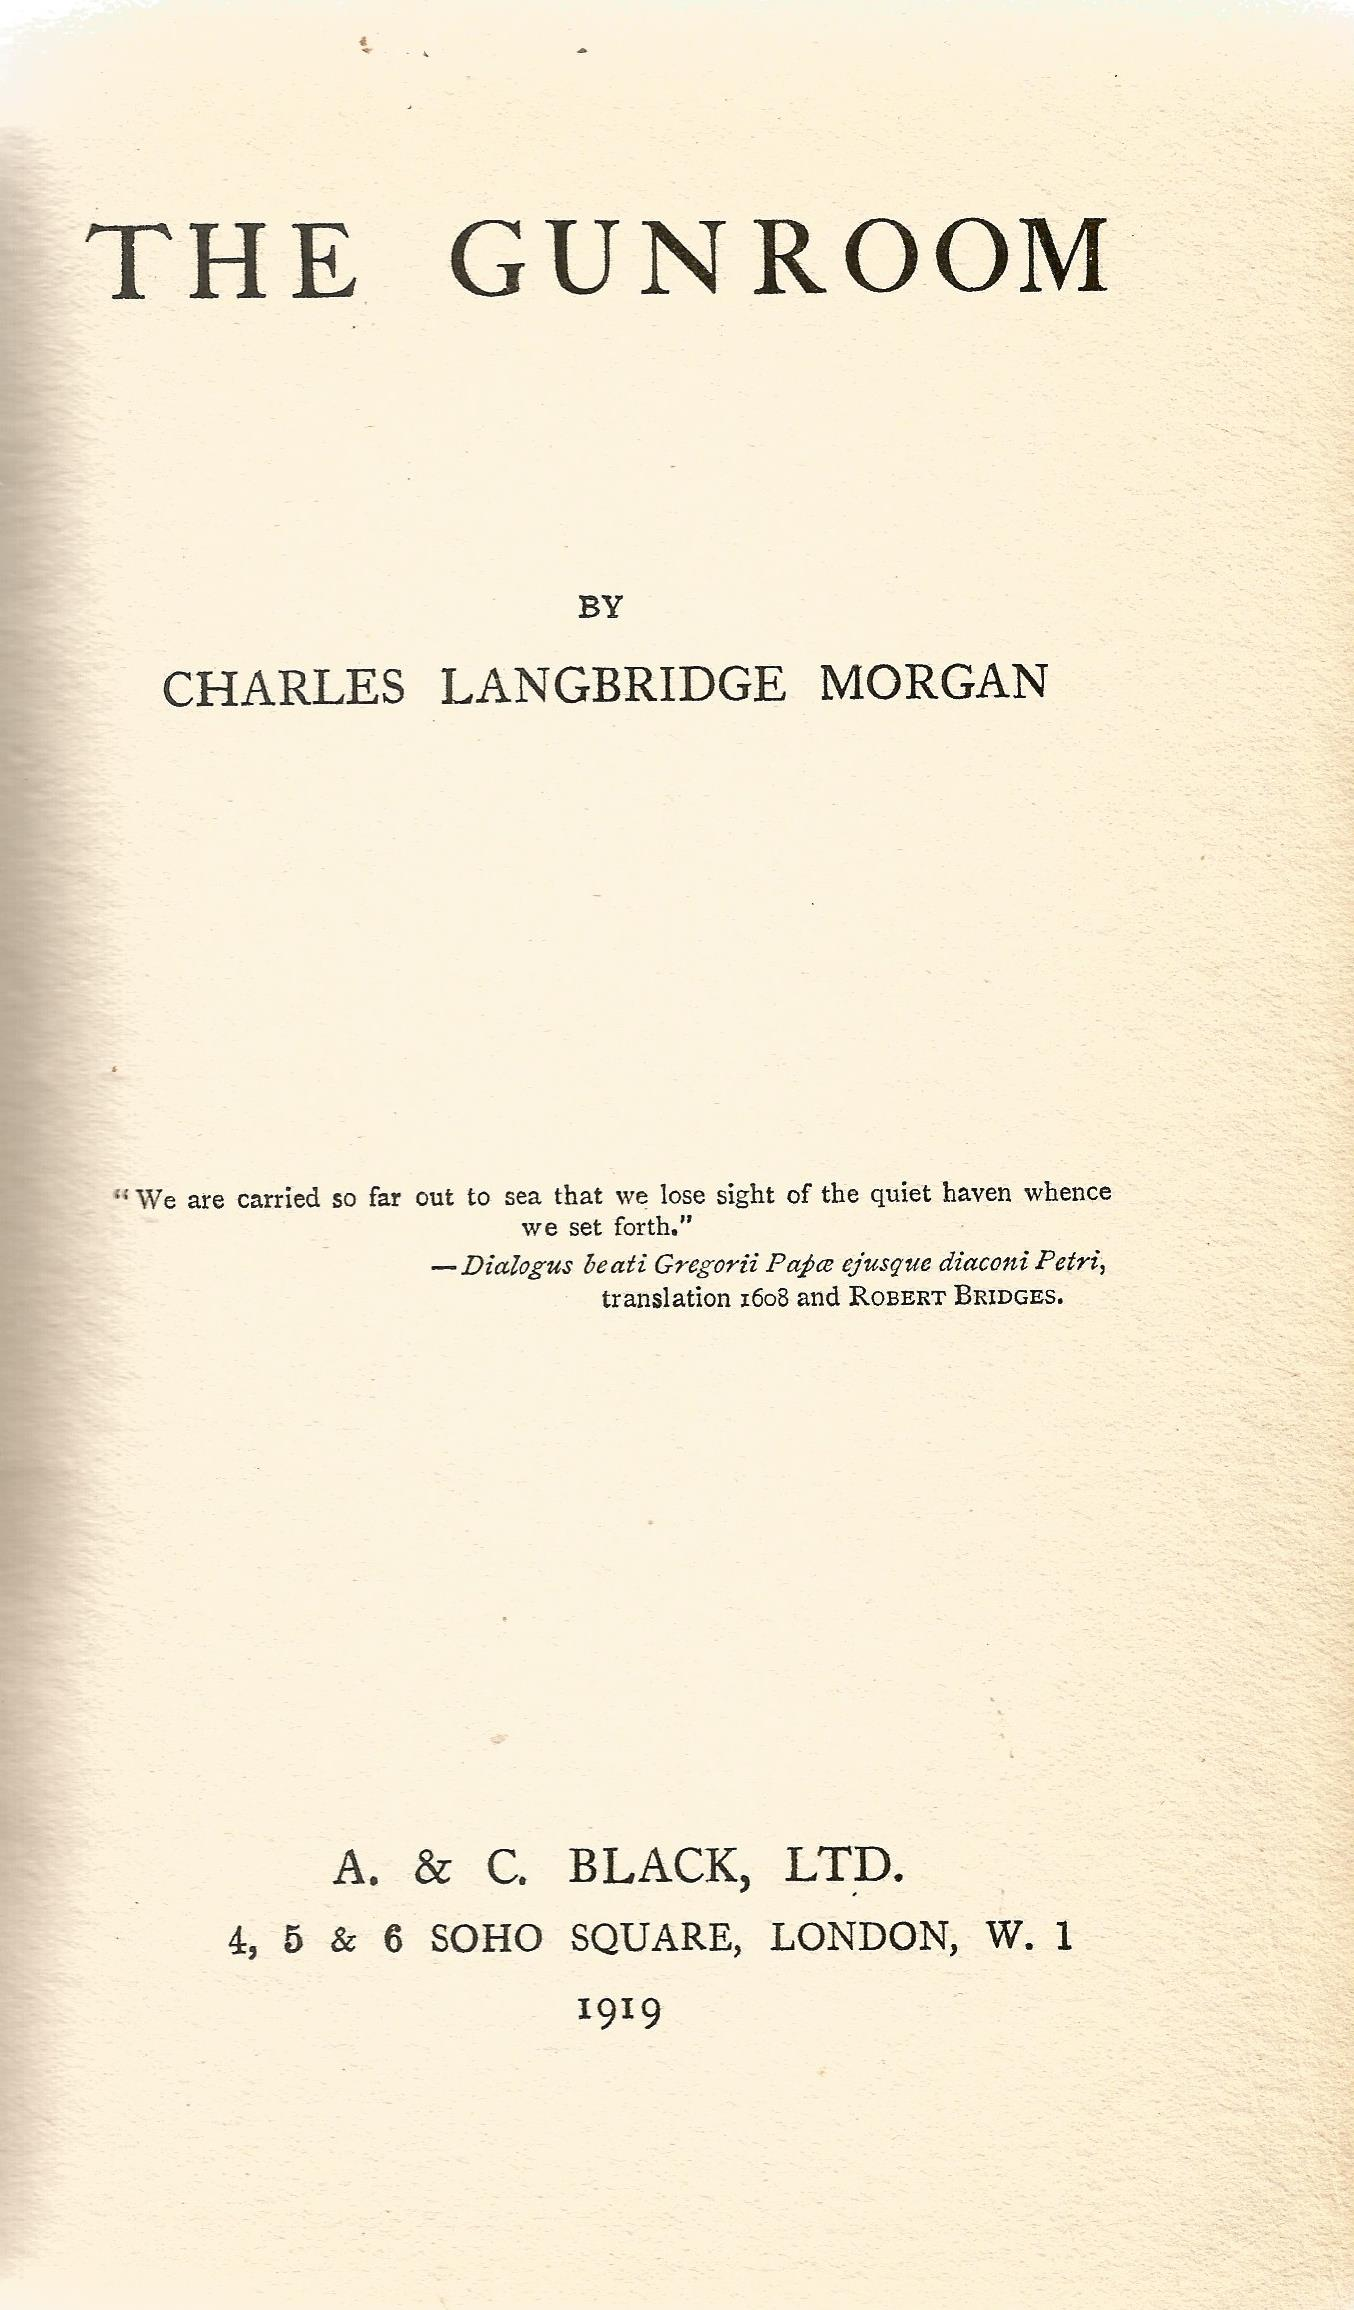 Signed Hardback Book The Gunroom by Charles Langbridge Morgan 1919 First Edition published by A C - Image 2 of 3